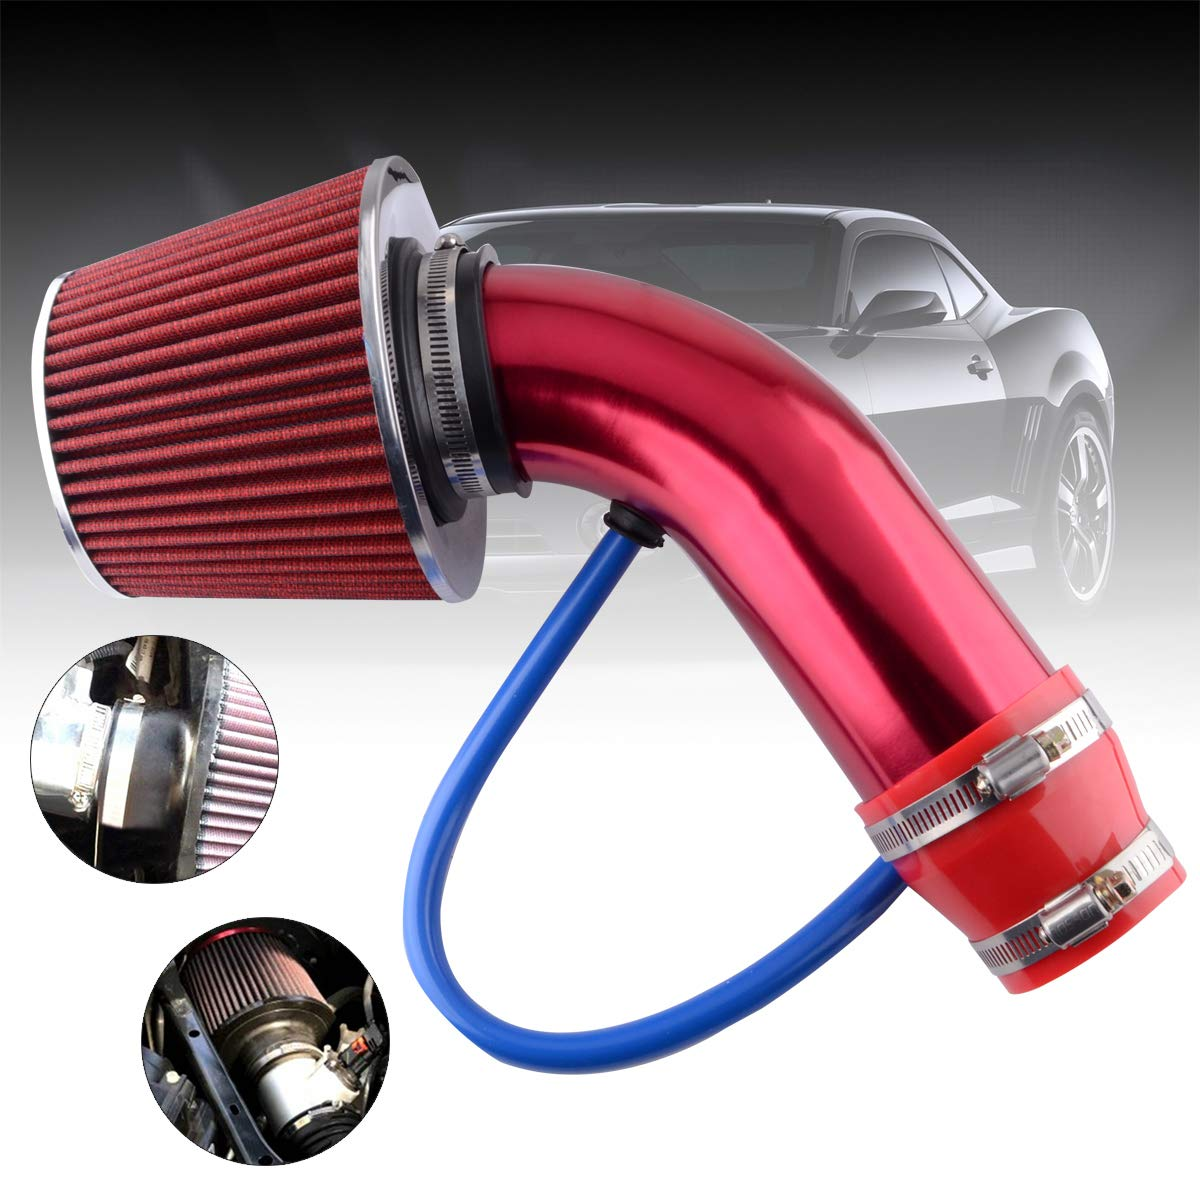 ESPEEDER 3High Performance Cold Air Intake Kit Universal Short Ram Air Intake System with Car Air Filter and Aluminum Air Intake Tube Red